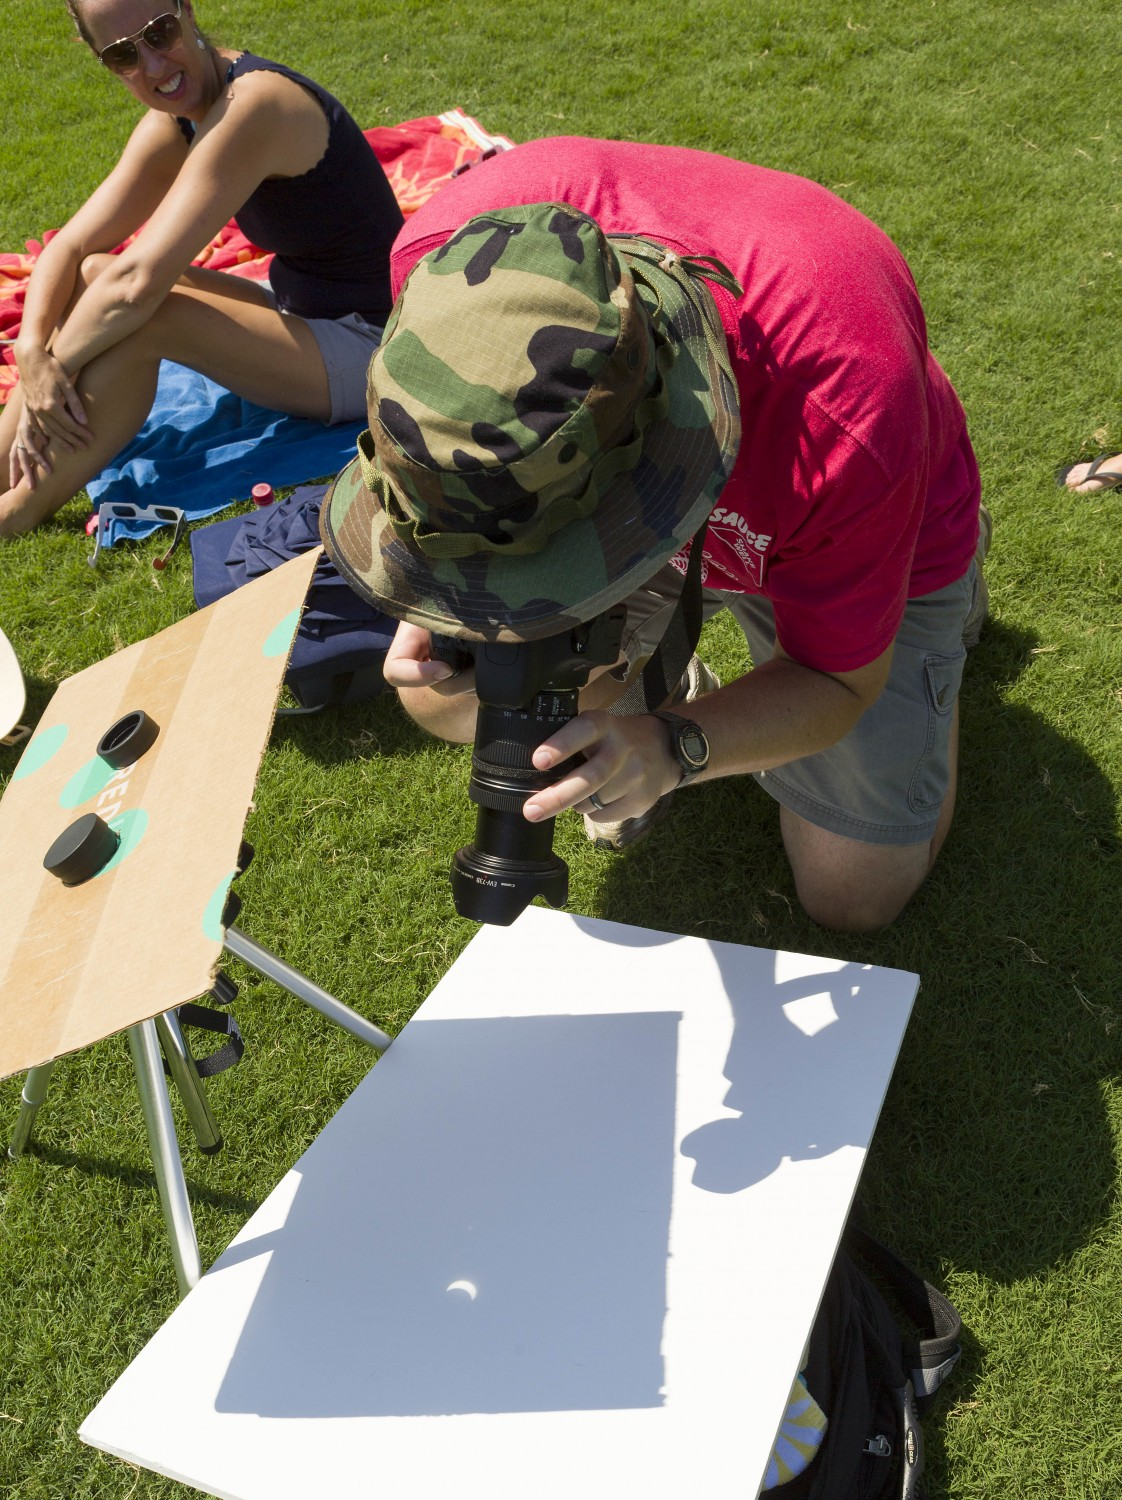 T.J. Hill of Cary focuses on the solar eclipse as projected and magnified by binoculars on a piece of foam core. Hill tried out his homemade pinhole camera at North Cary Park, where he and his family, including wife Jennifer, joined others for the historic event.